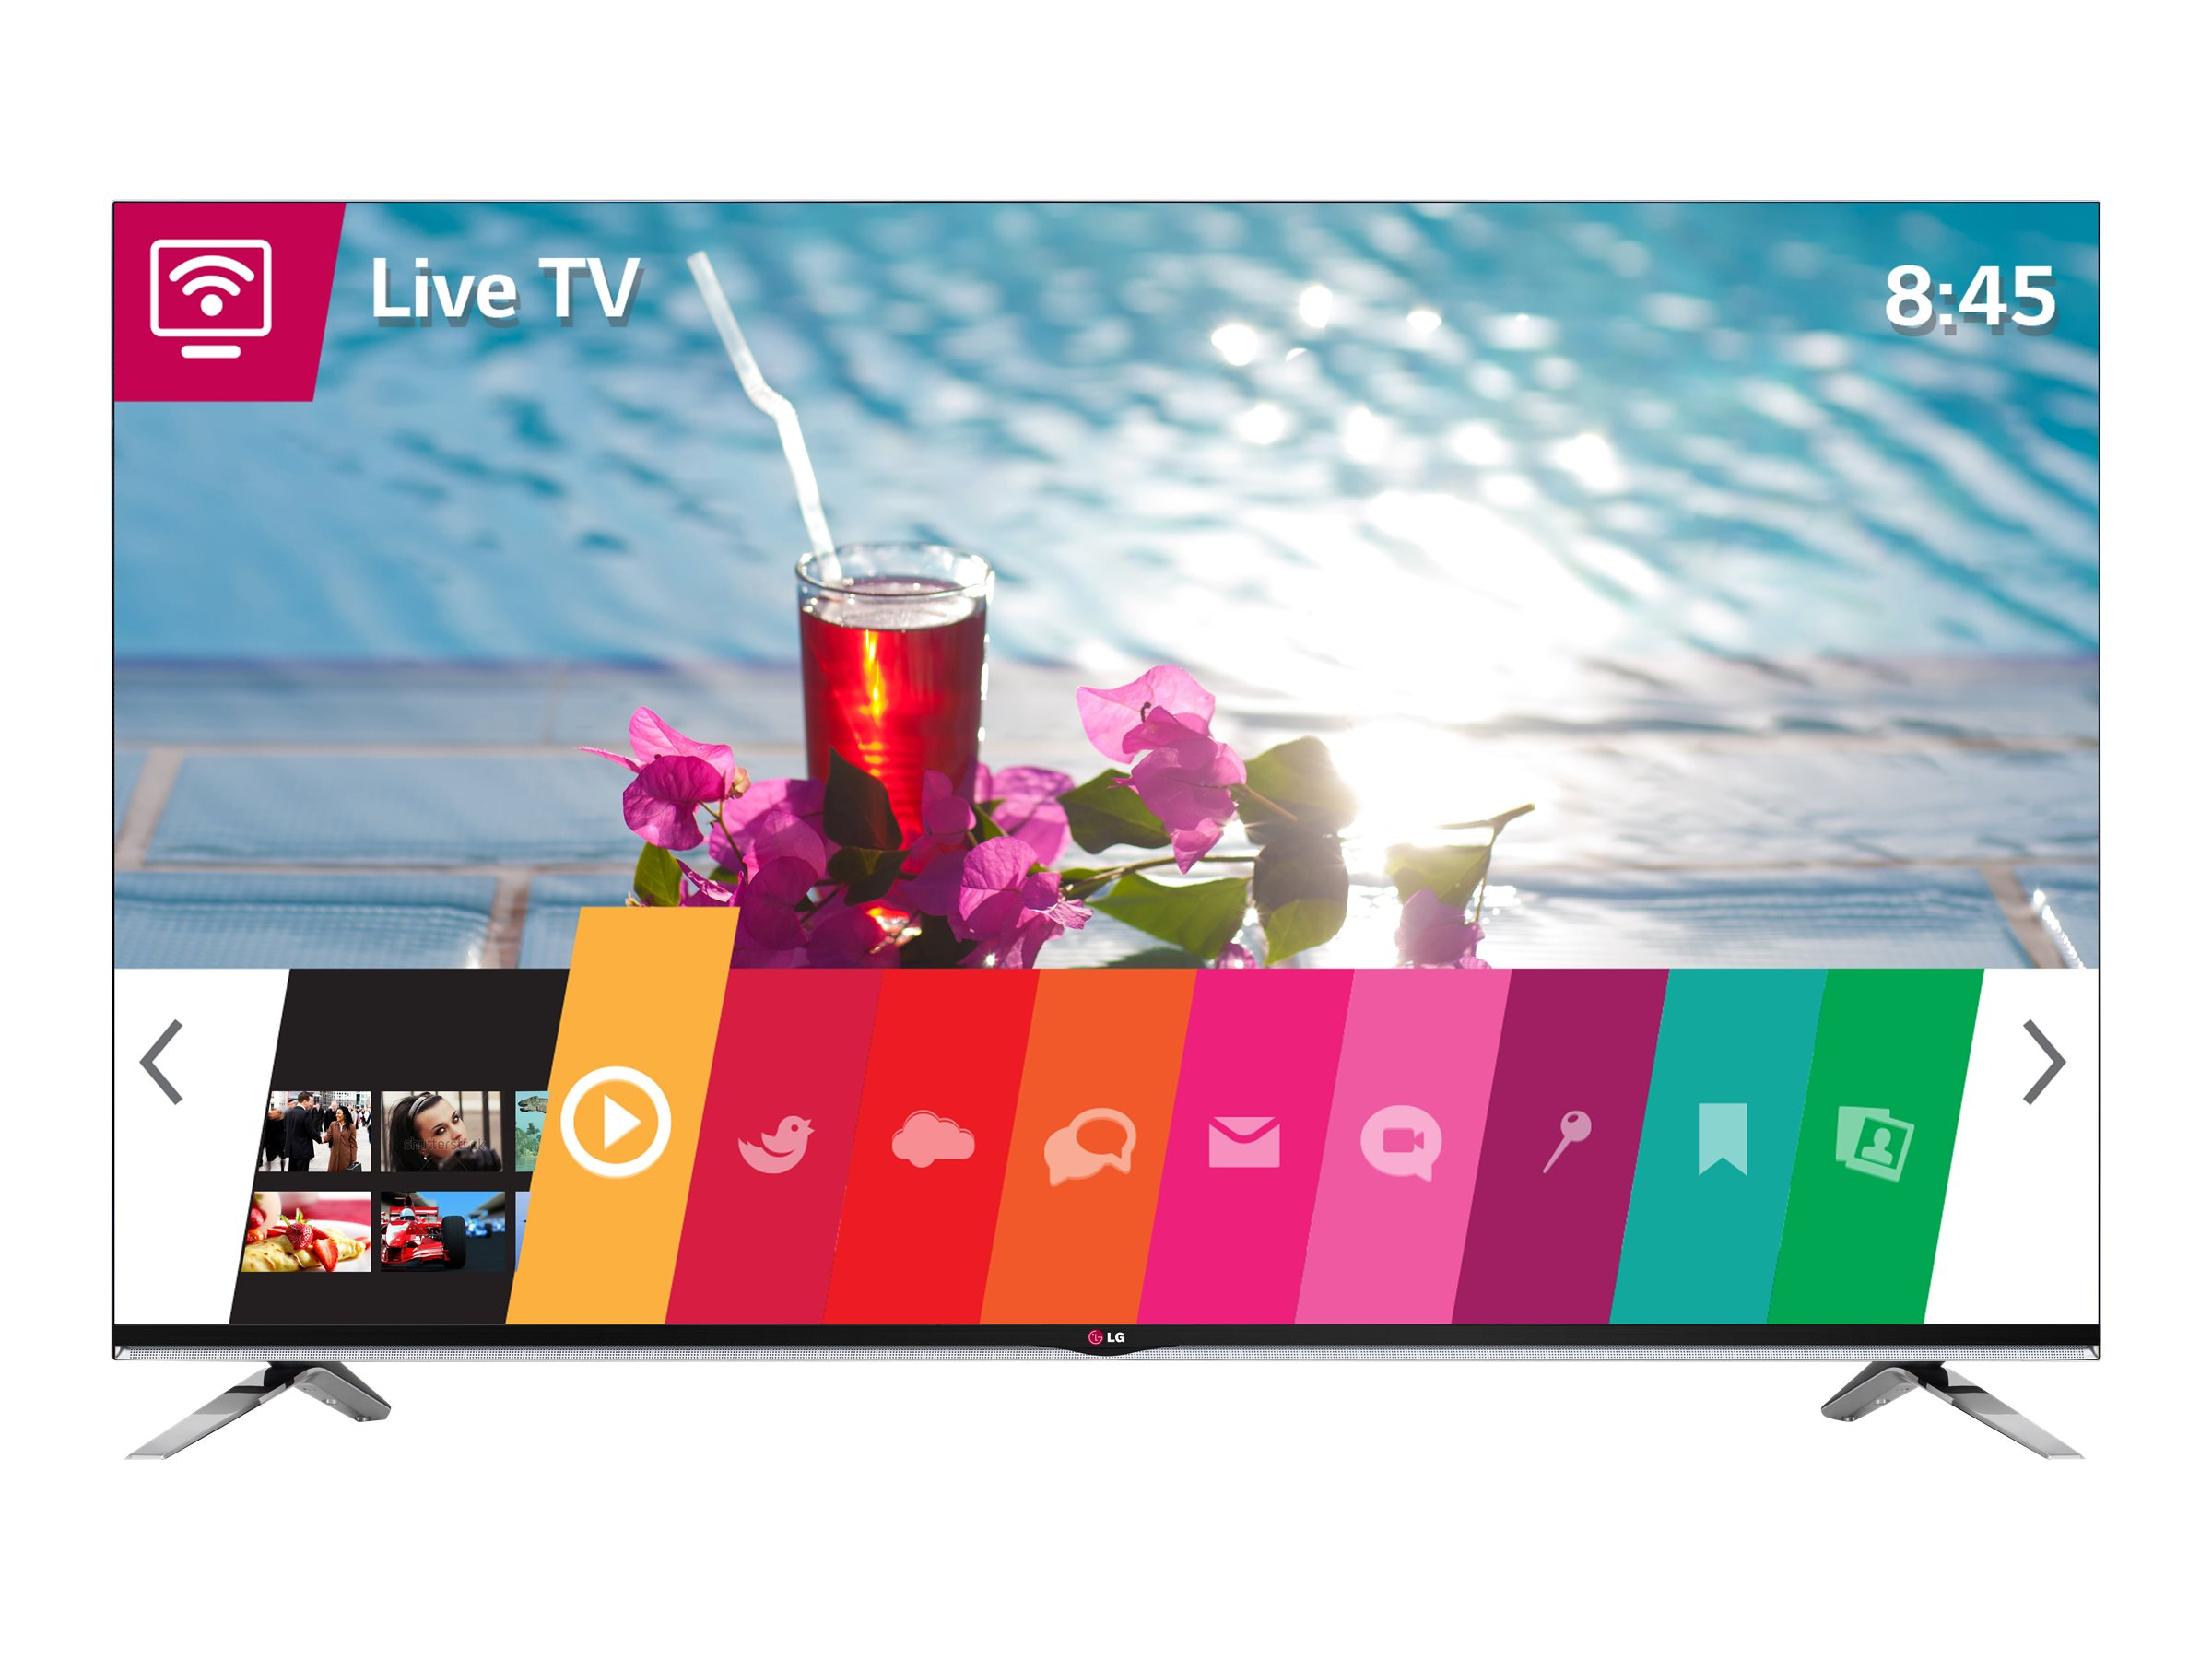 LG 60 LY970H Full HD LED-LCD TV, Black, 60LY970H, 18390254, Televisions - LED-LCD Commercial